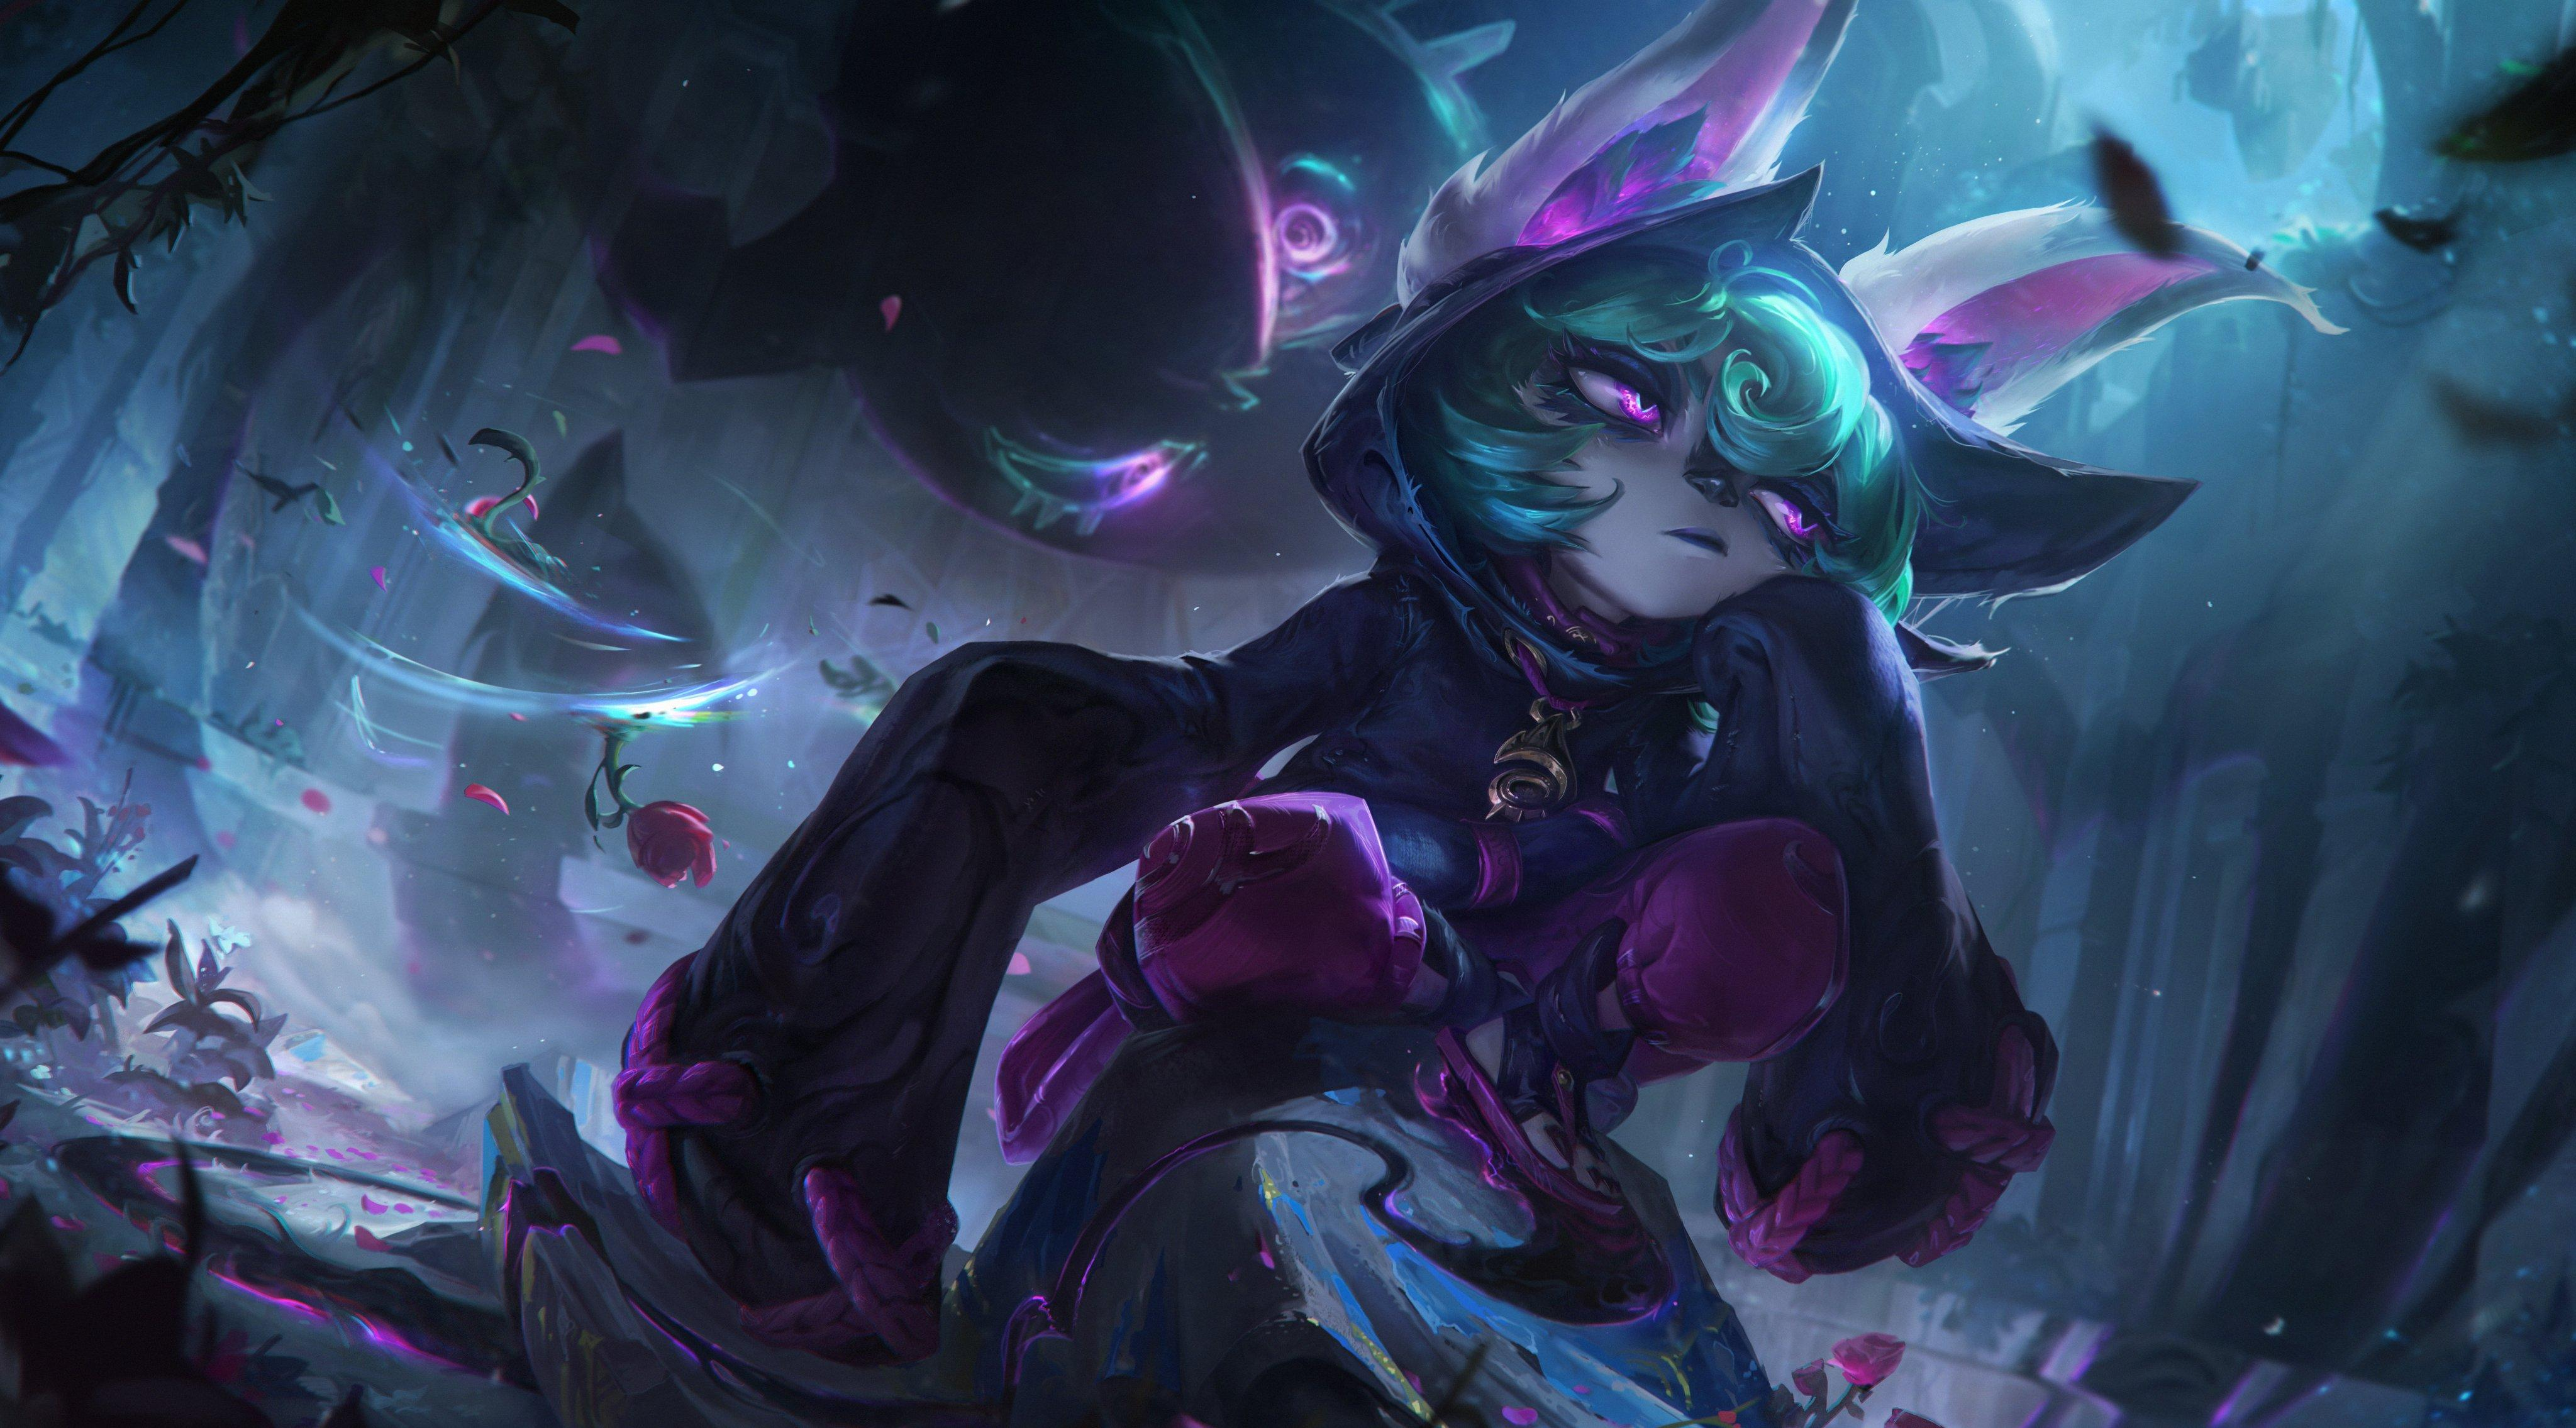 League of Legends - Vex, a small rabbit Yordle, lounges and sulks while surrounded by a torrent of magical energy